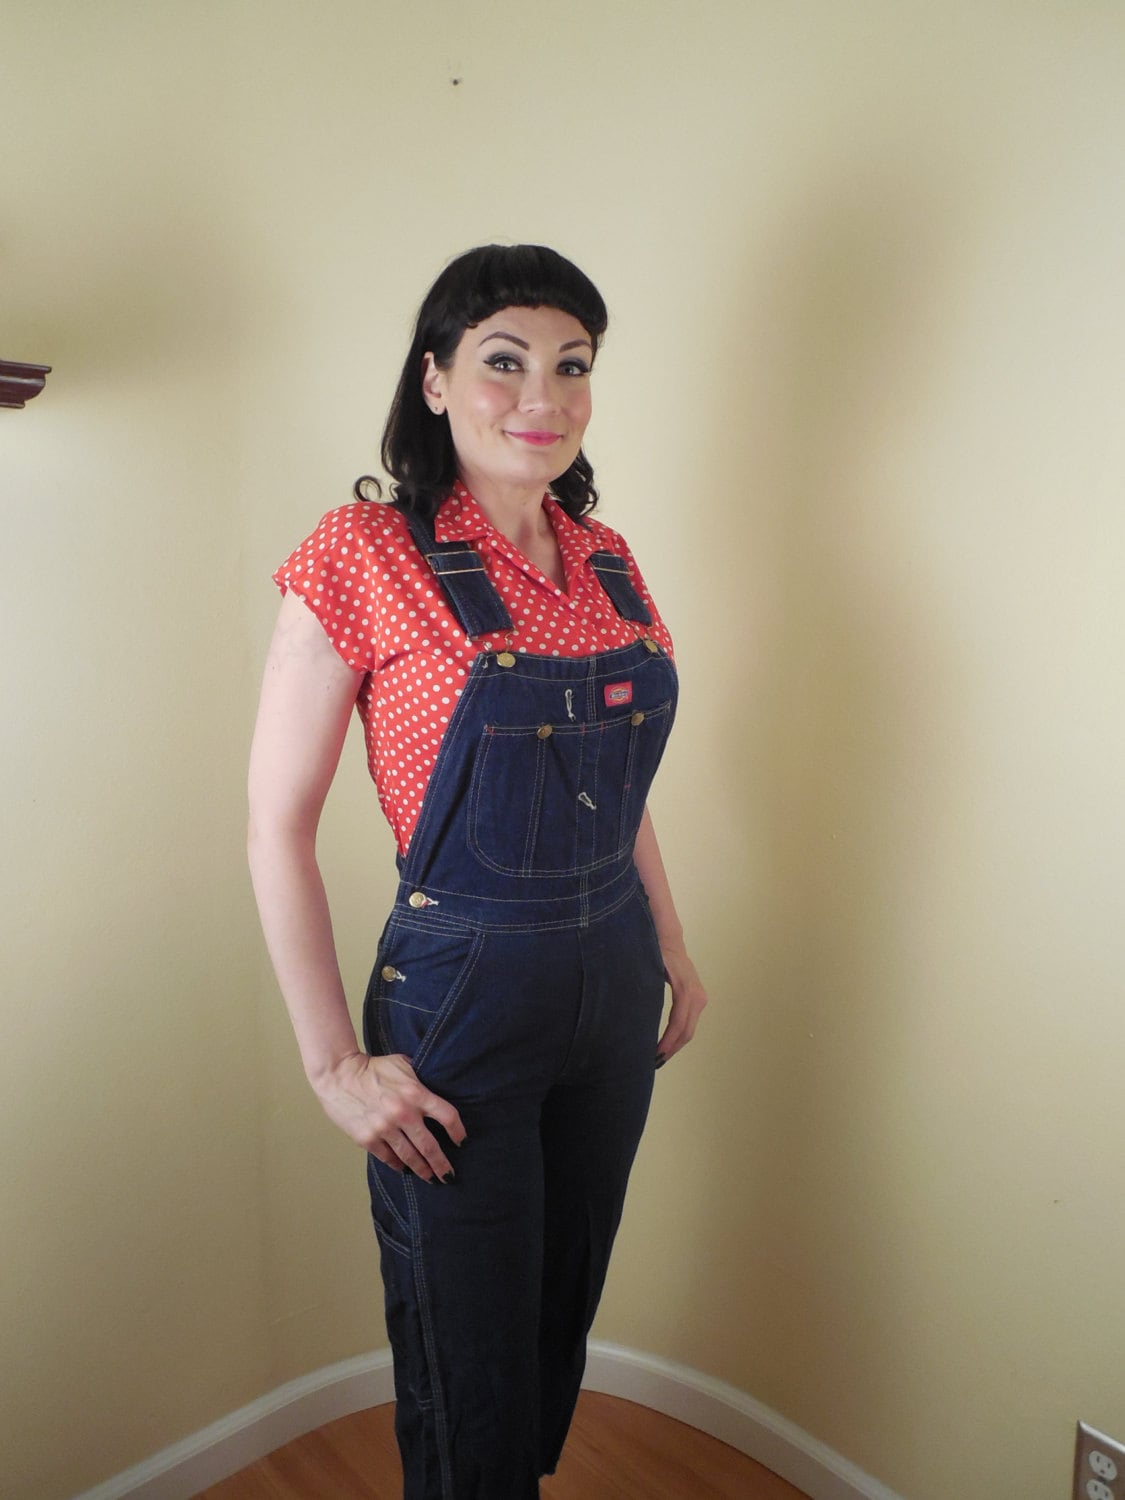 2dcb1af3fcf9 Dickies Overalls For Women Related Keywords   Suggestions - Dickies ...